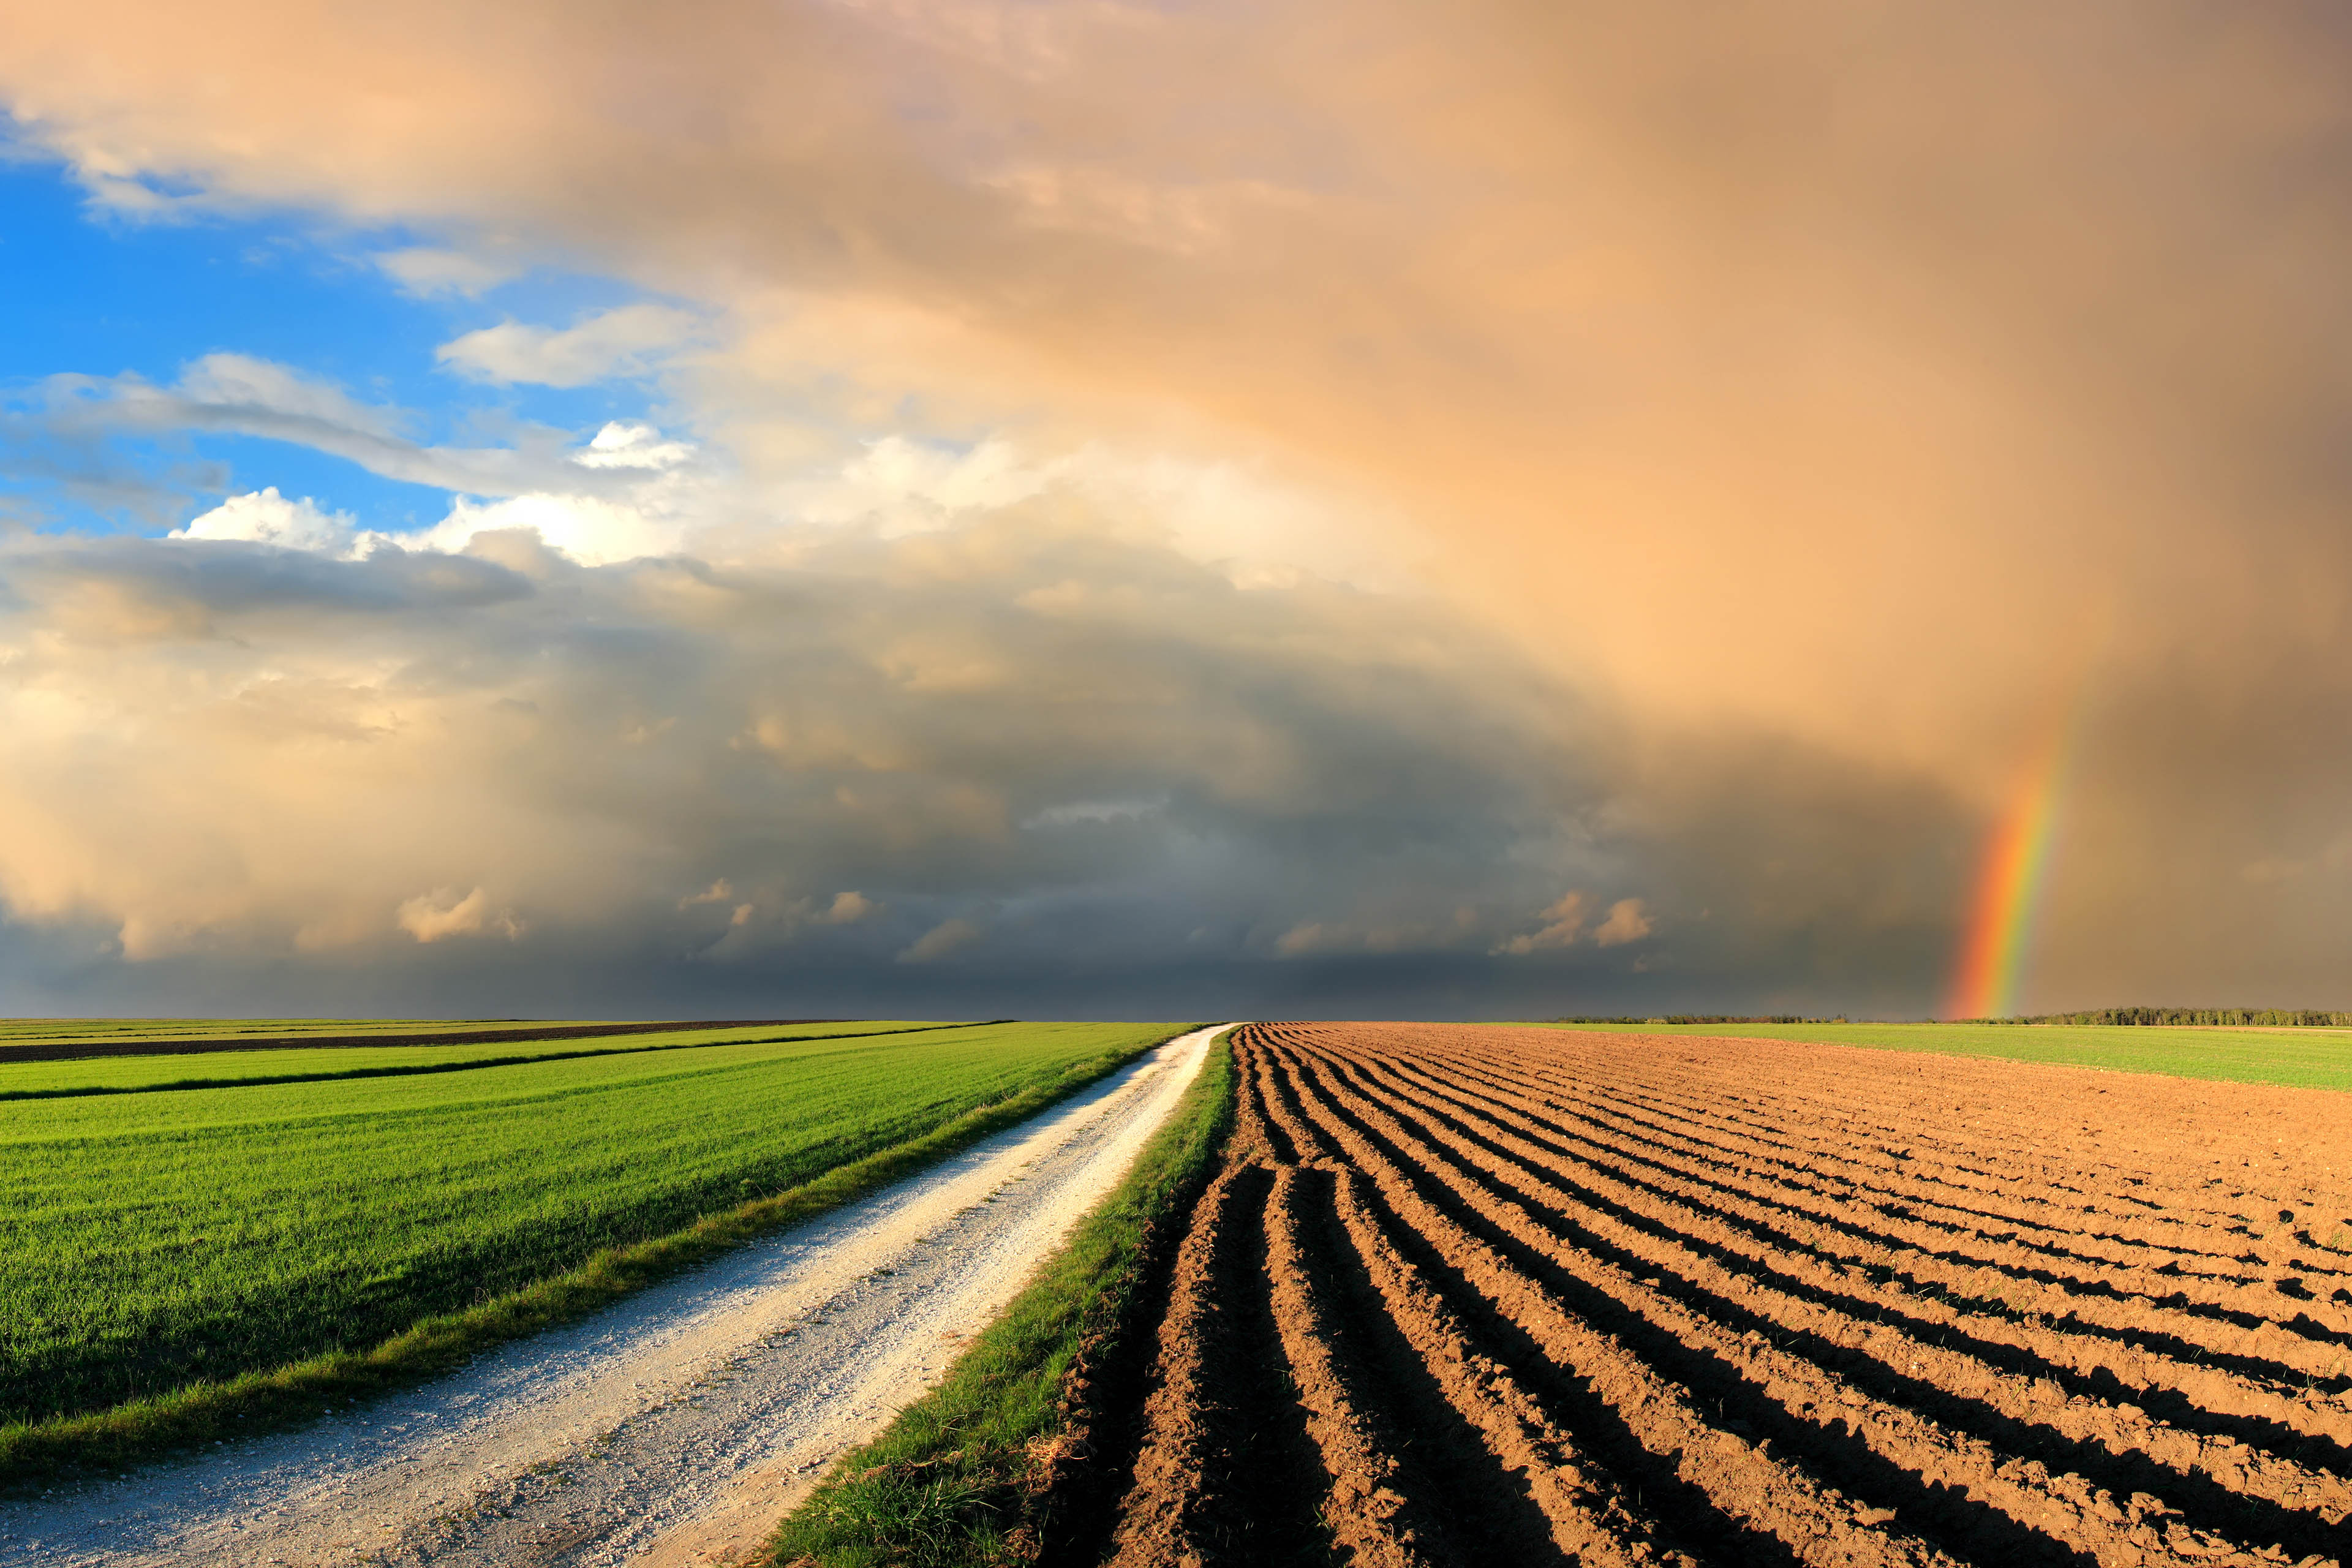 fields and rainbow in the sunset sky